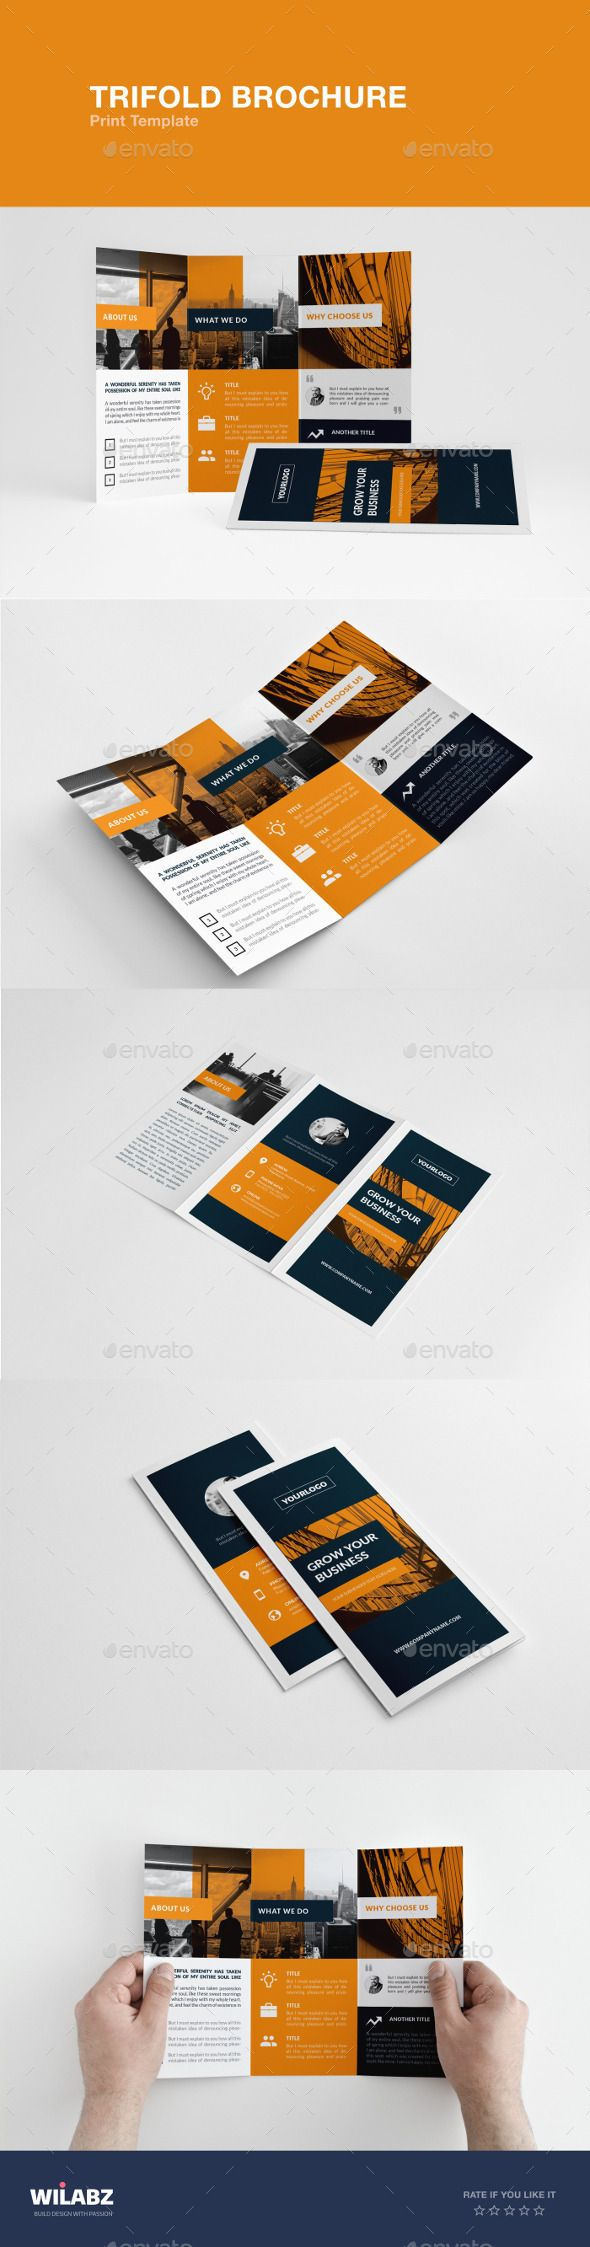 208 best brochure images on pinterest brochures brochure template trifold brochure brochure ideasbrochure templatepamphlet maxwellsz